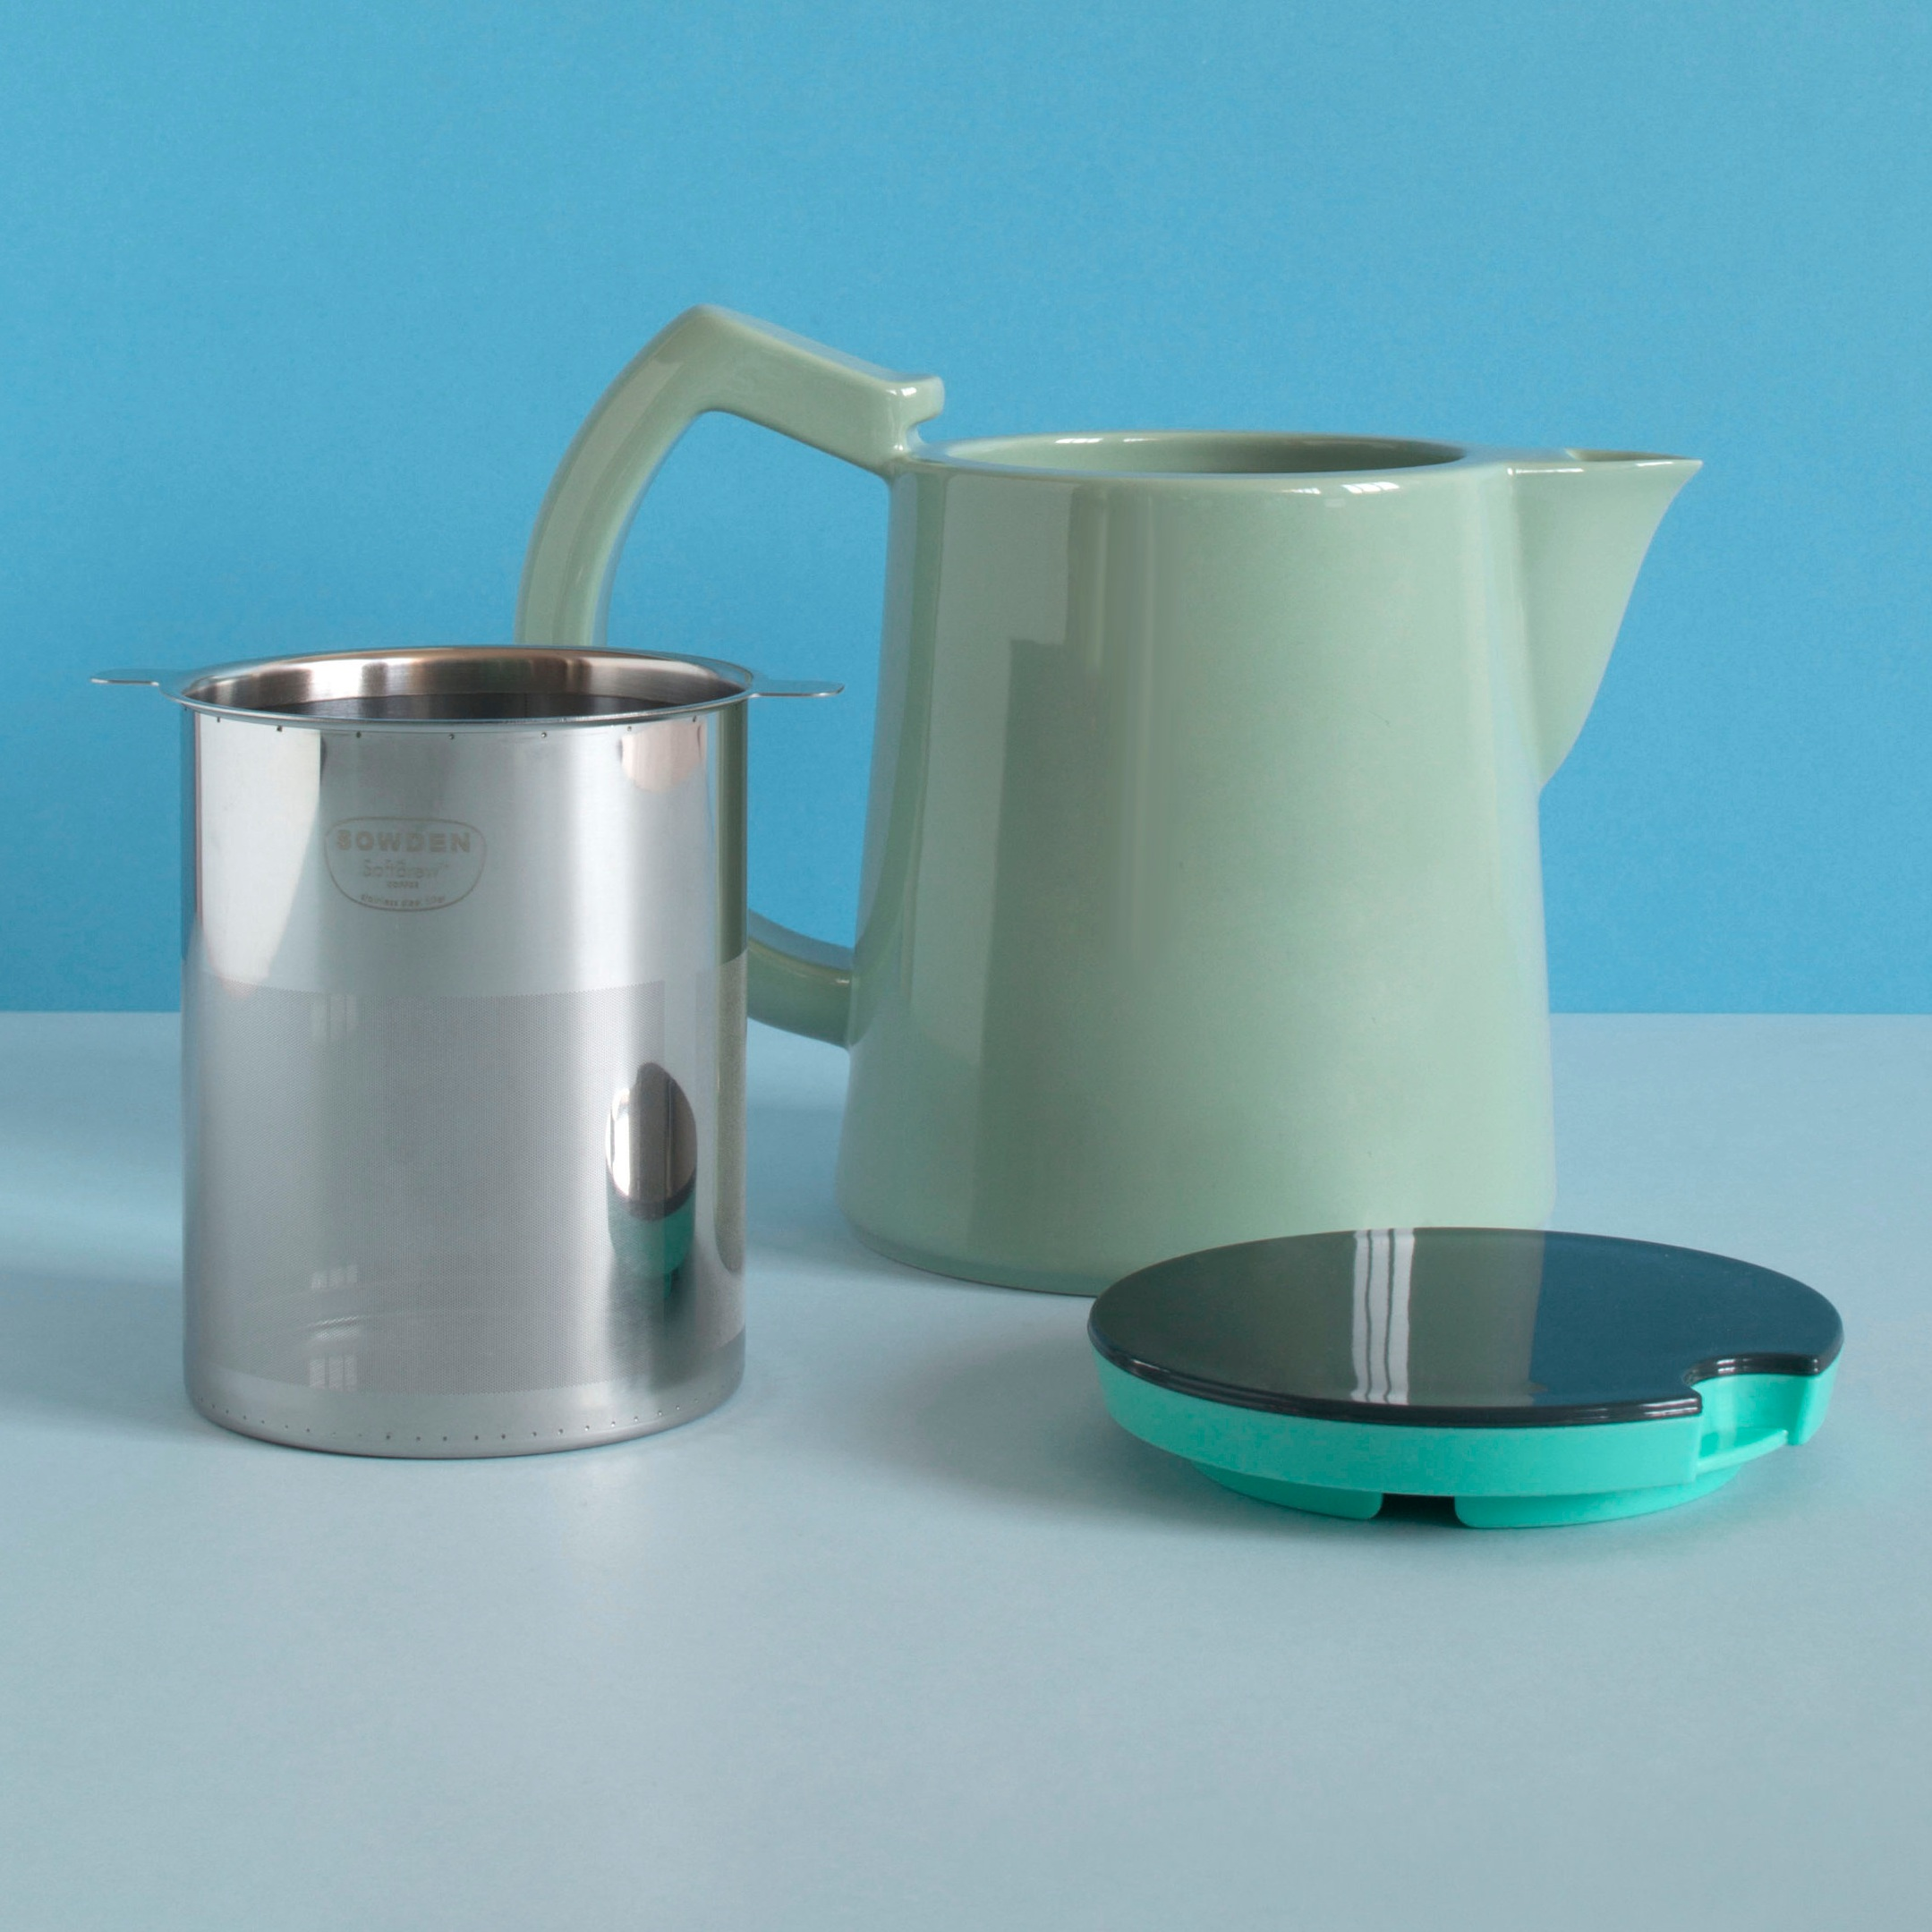 COFFEE - Sowden SoftBrew™ - porcelain pot, stainless steel SoftBrew™ filter and lid -